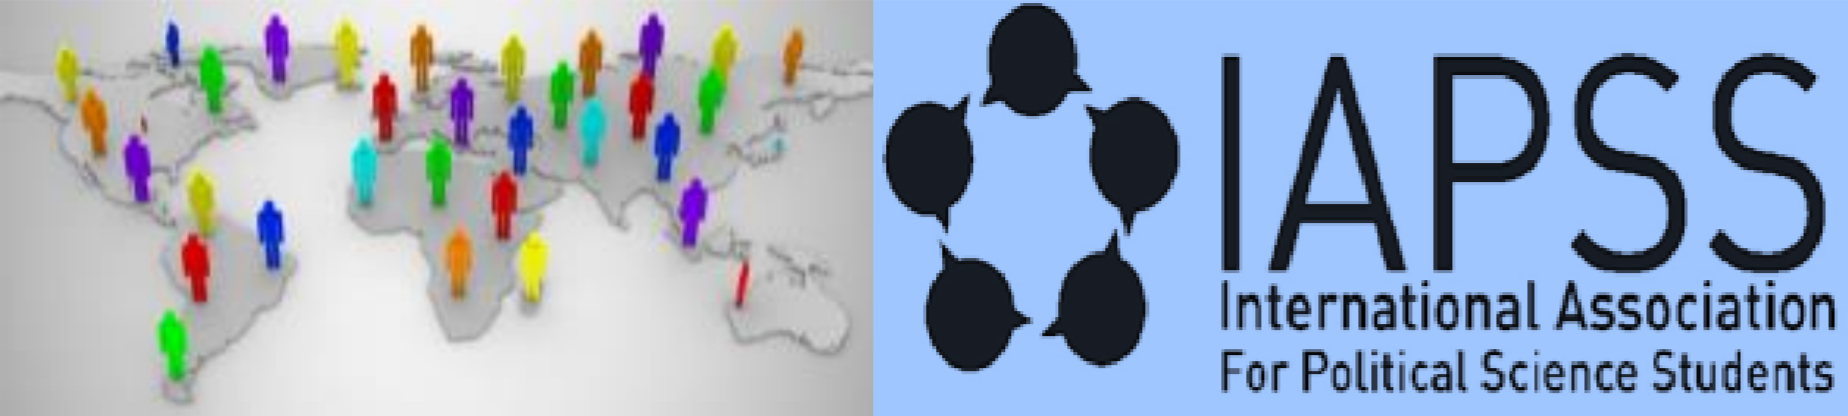 International Association For Political Science Students Logo & World Map With Multi-Colored People Icons